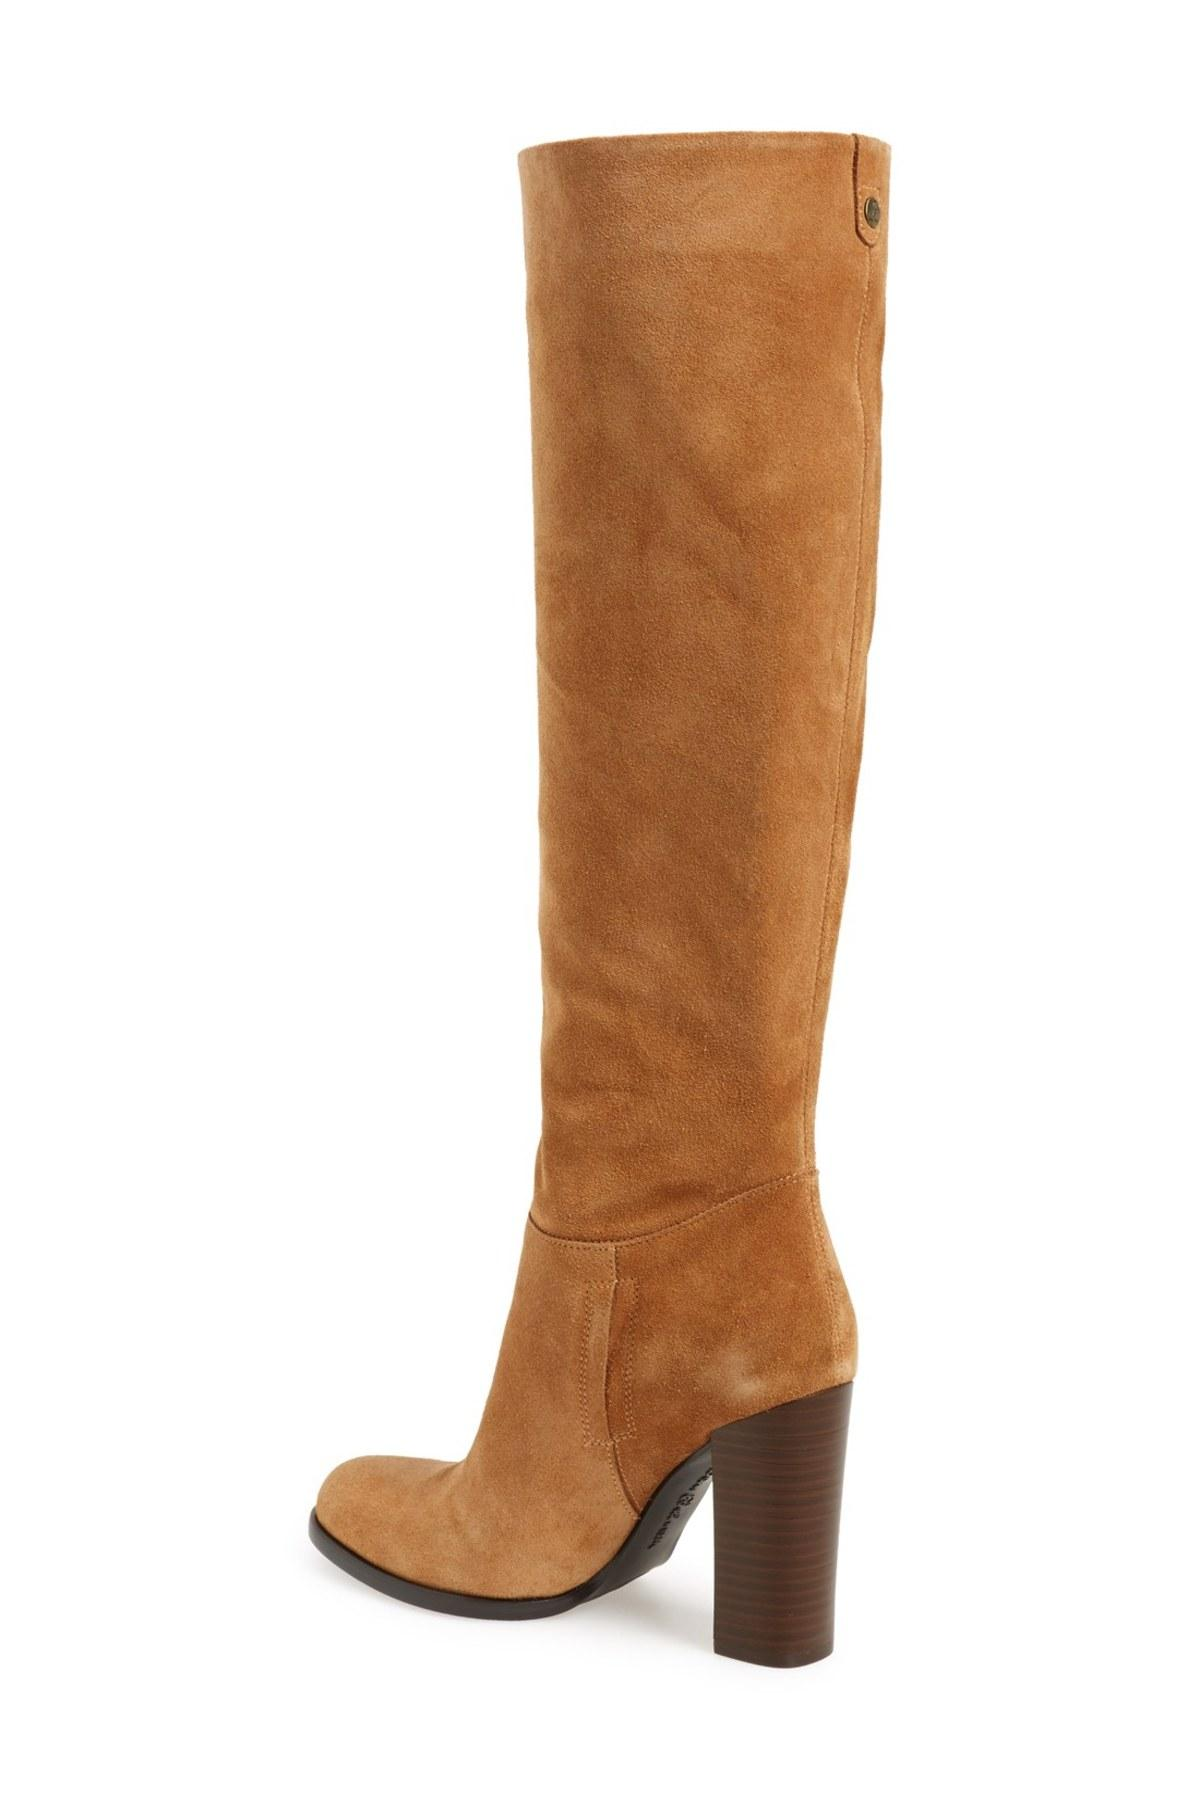 a2592845f52ccc Lyst - Sam Edelman Victoria Slouch Boot